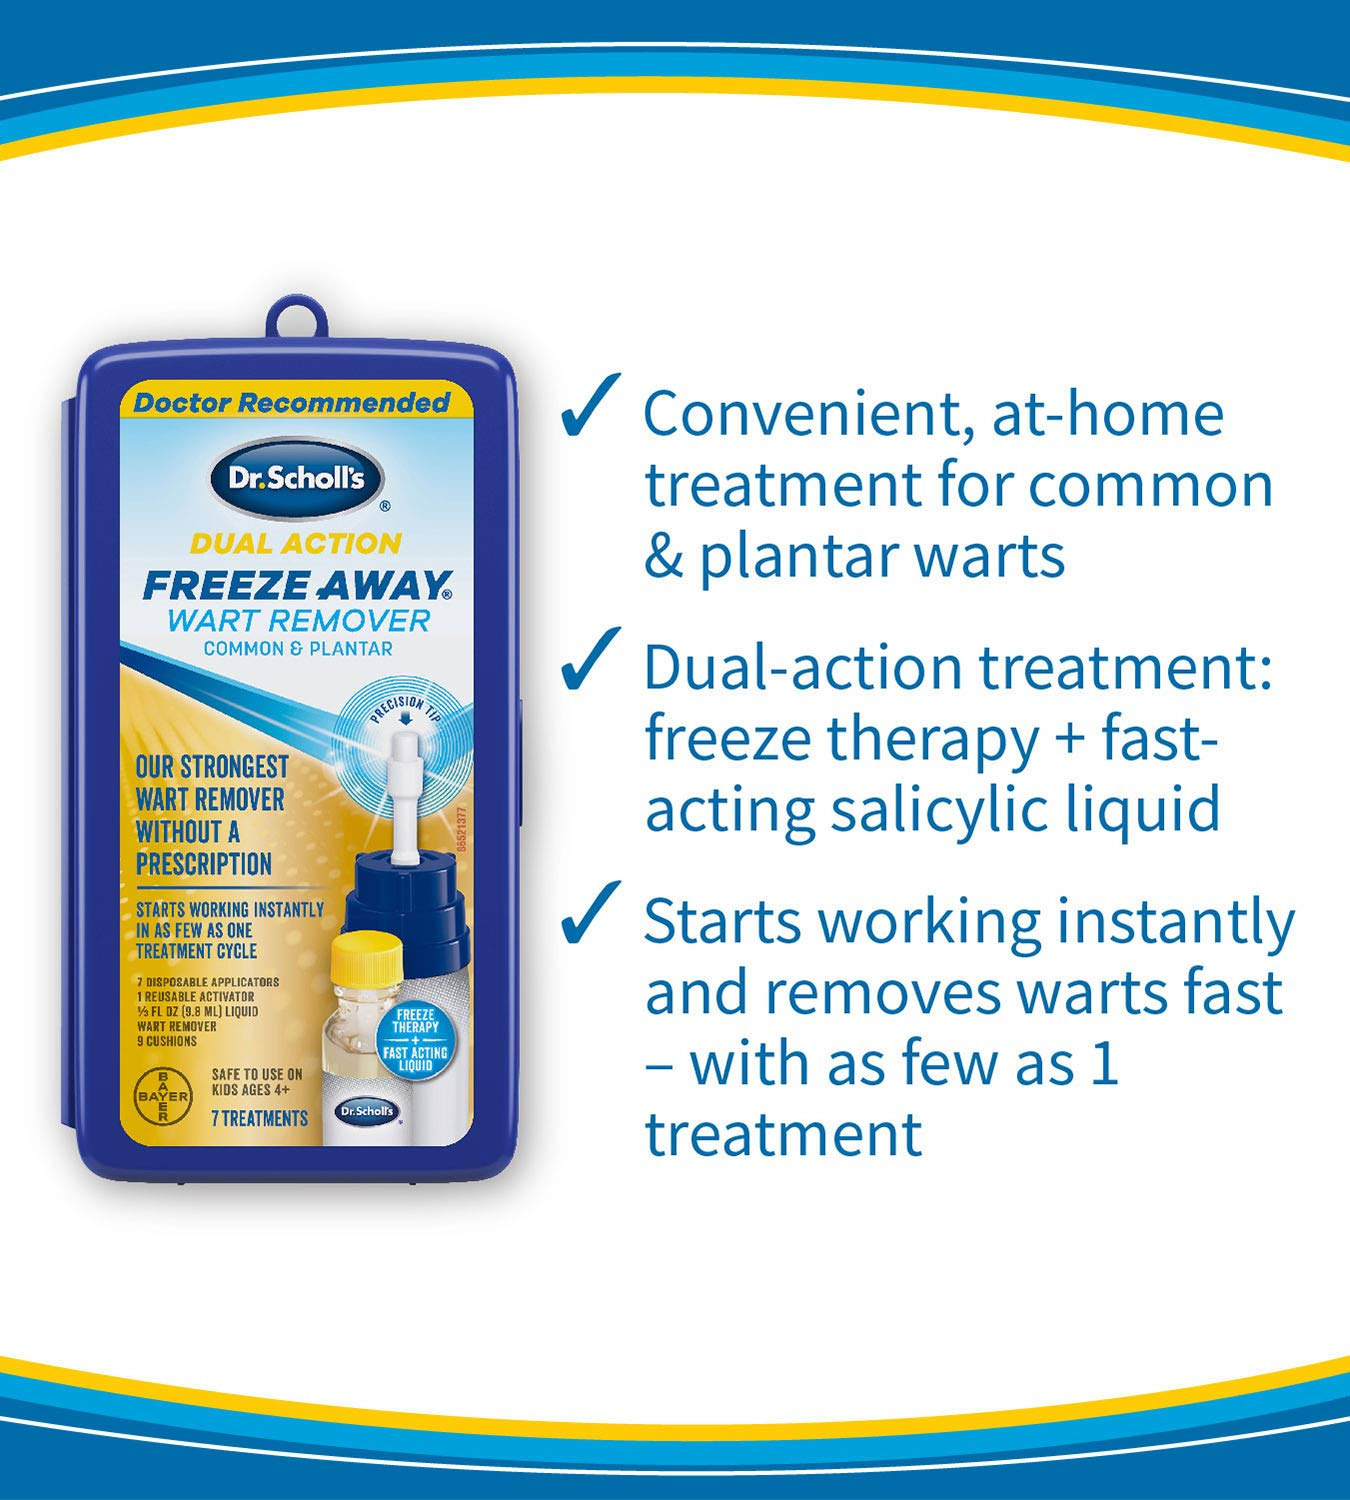 Dr. Scholl's FreezeAway Wart Remover Dual Action, 7 Applications / Freeze Therapy + Powerful Fast Acting Salicylic Liquid to Remove Common and Plantar Warts